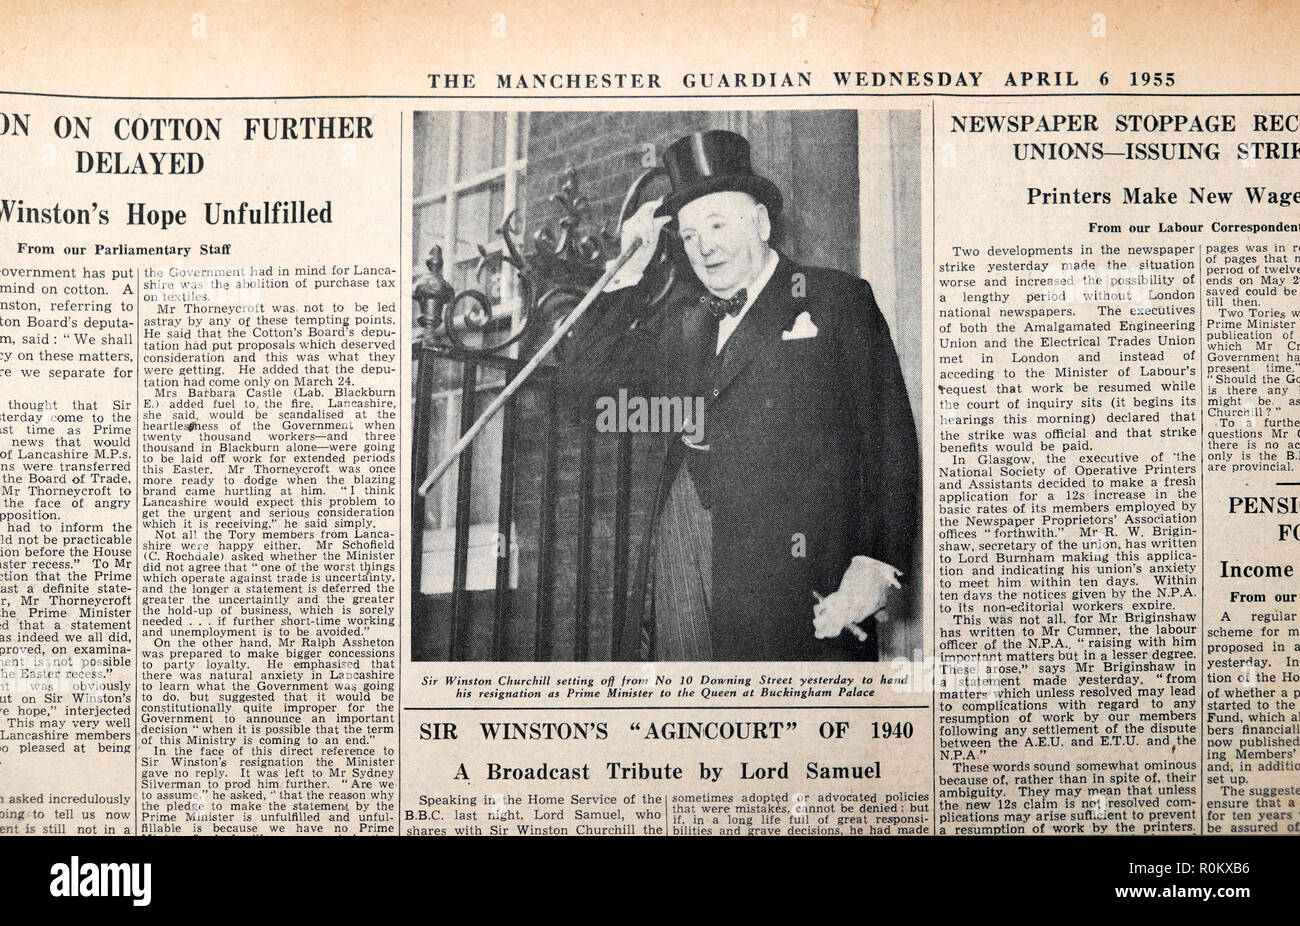 'Sir Winston Churchill setting off from 10 Downing Street to hand his resignation as Prime Minister to the Queen at Buckingham Palace'  6 April 1955 - Stock Image